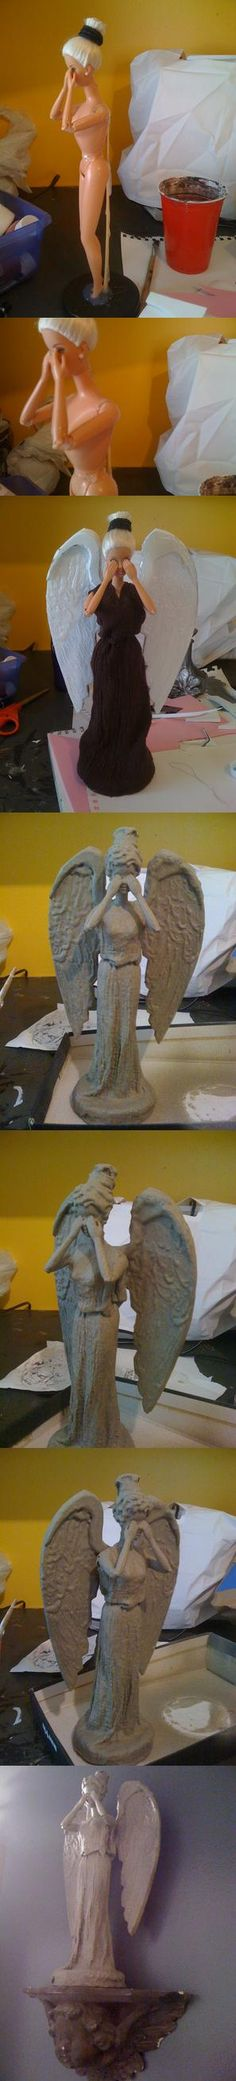 How to Make a Weeping Angel Barbie (link in comments) - I NEED to do this for Halloween!!